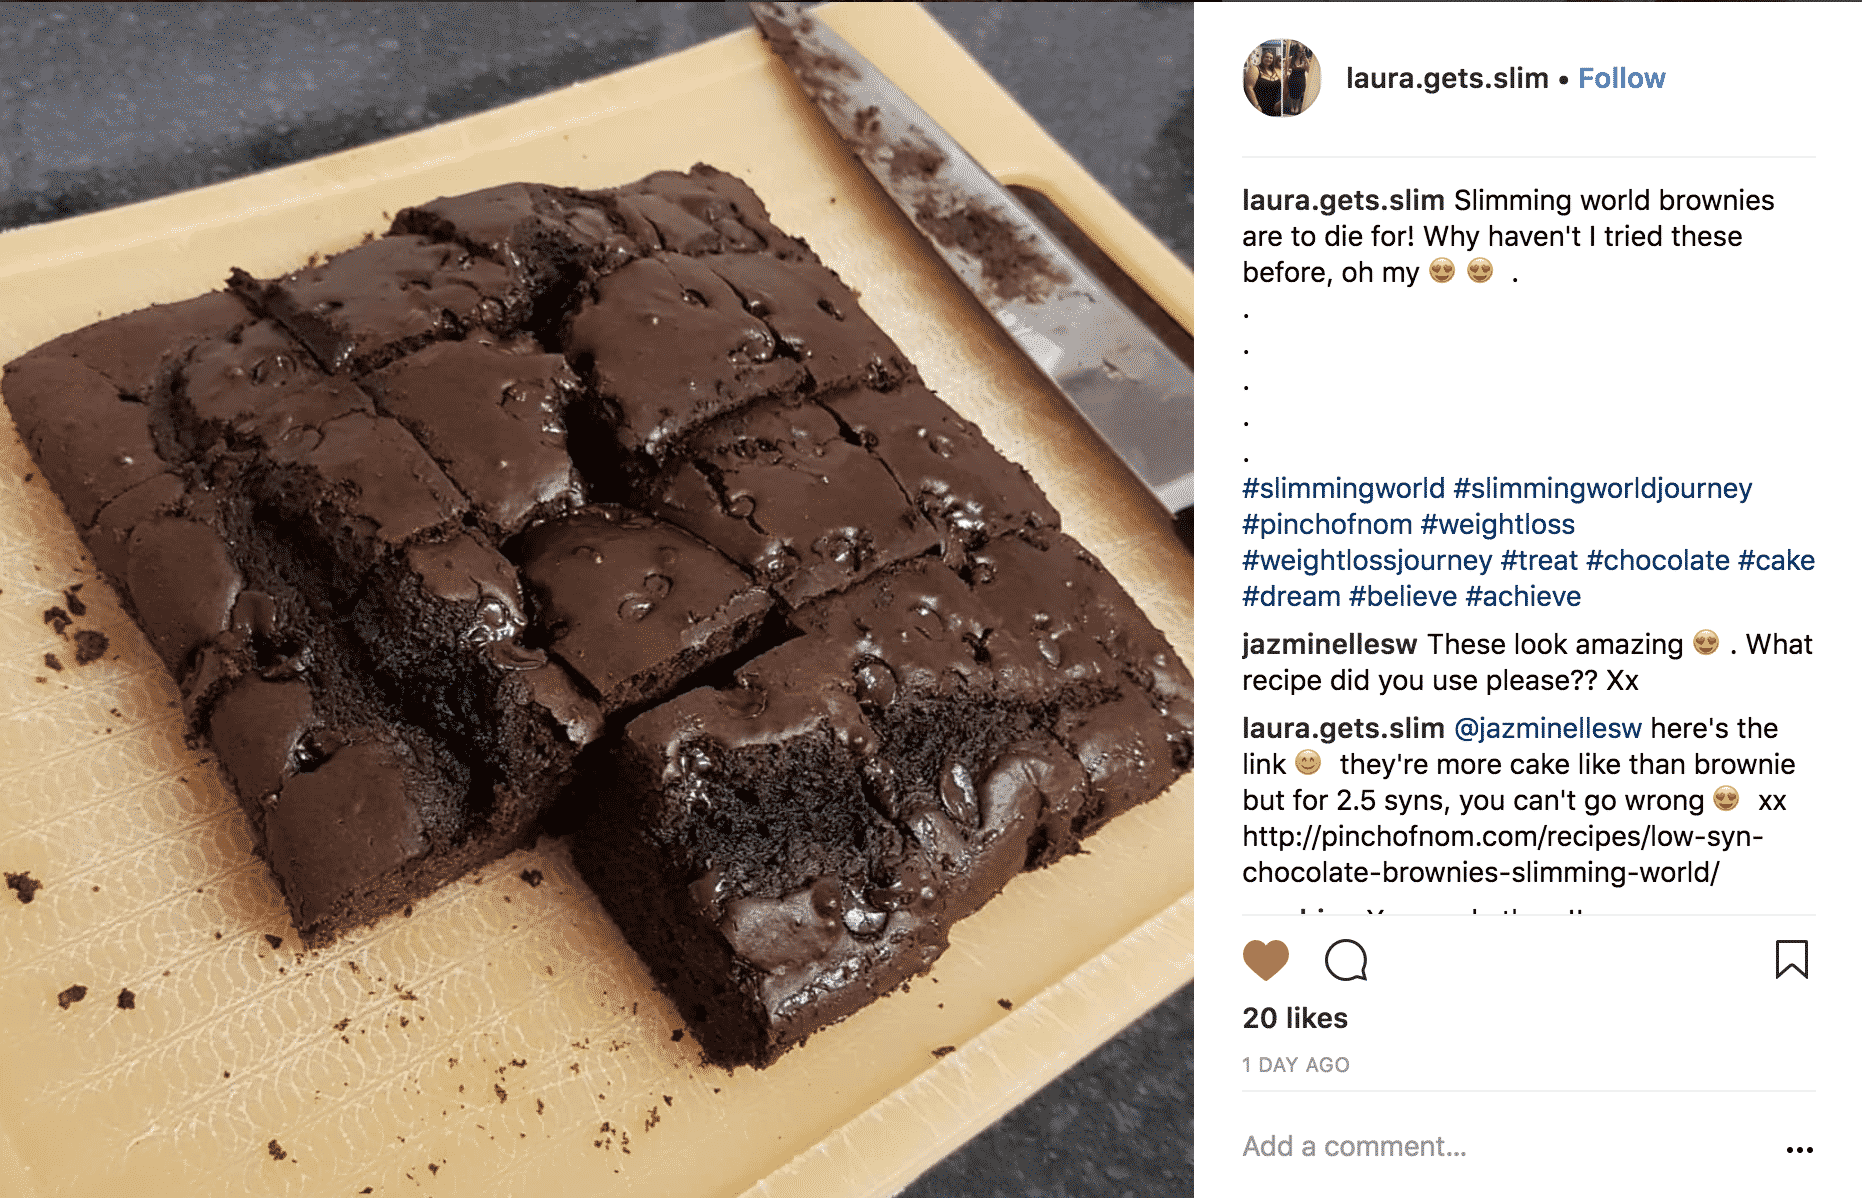 brownies - laura.gets.slim